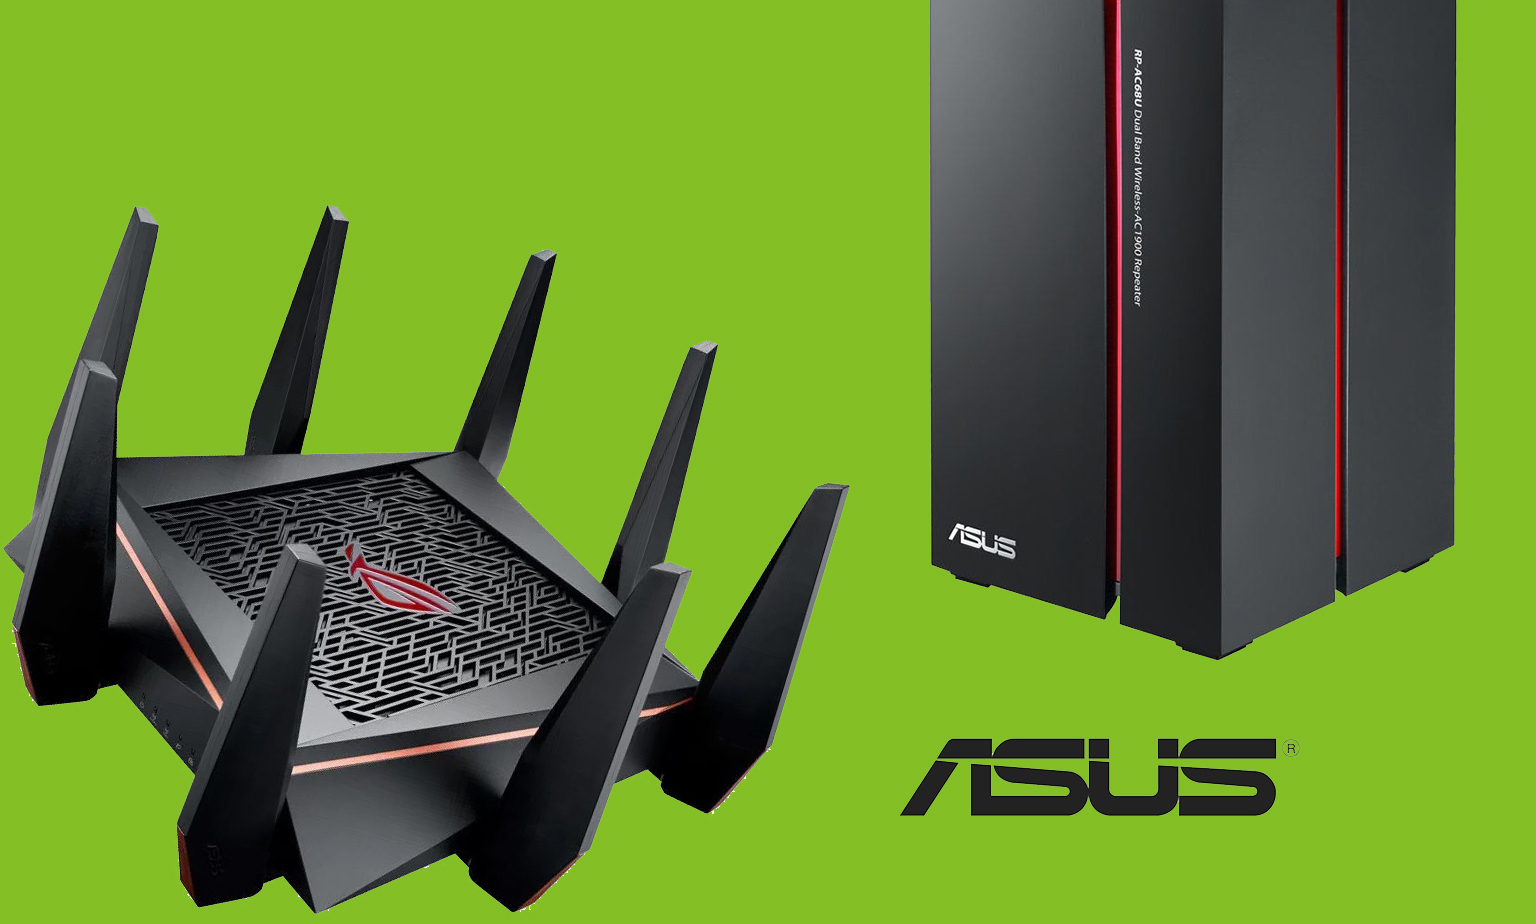 Up to $30 Cashback* on ASUS From Wireless 1!